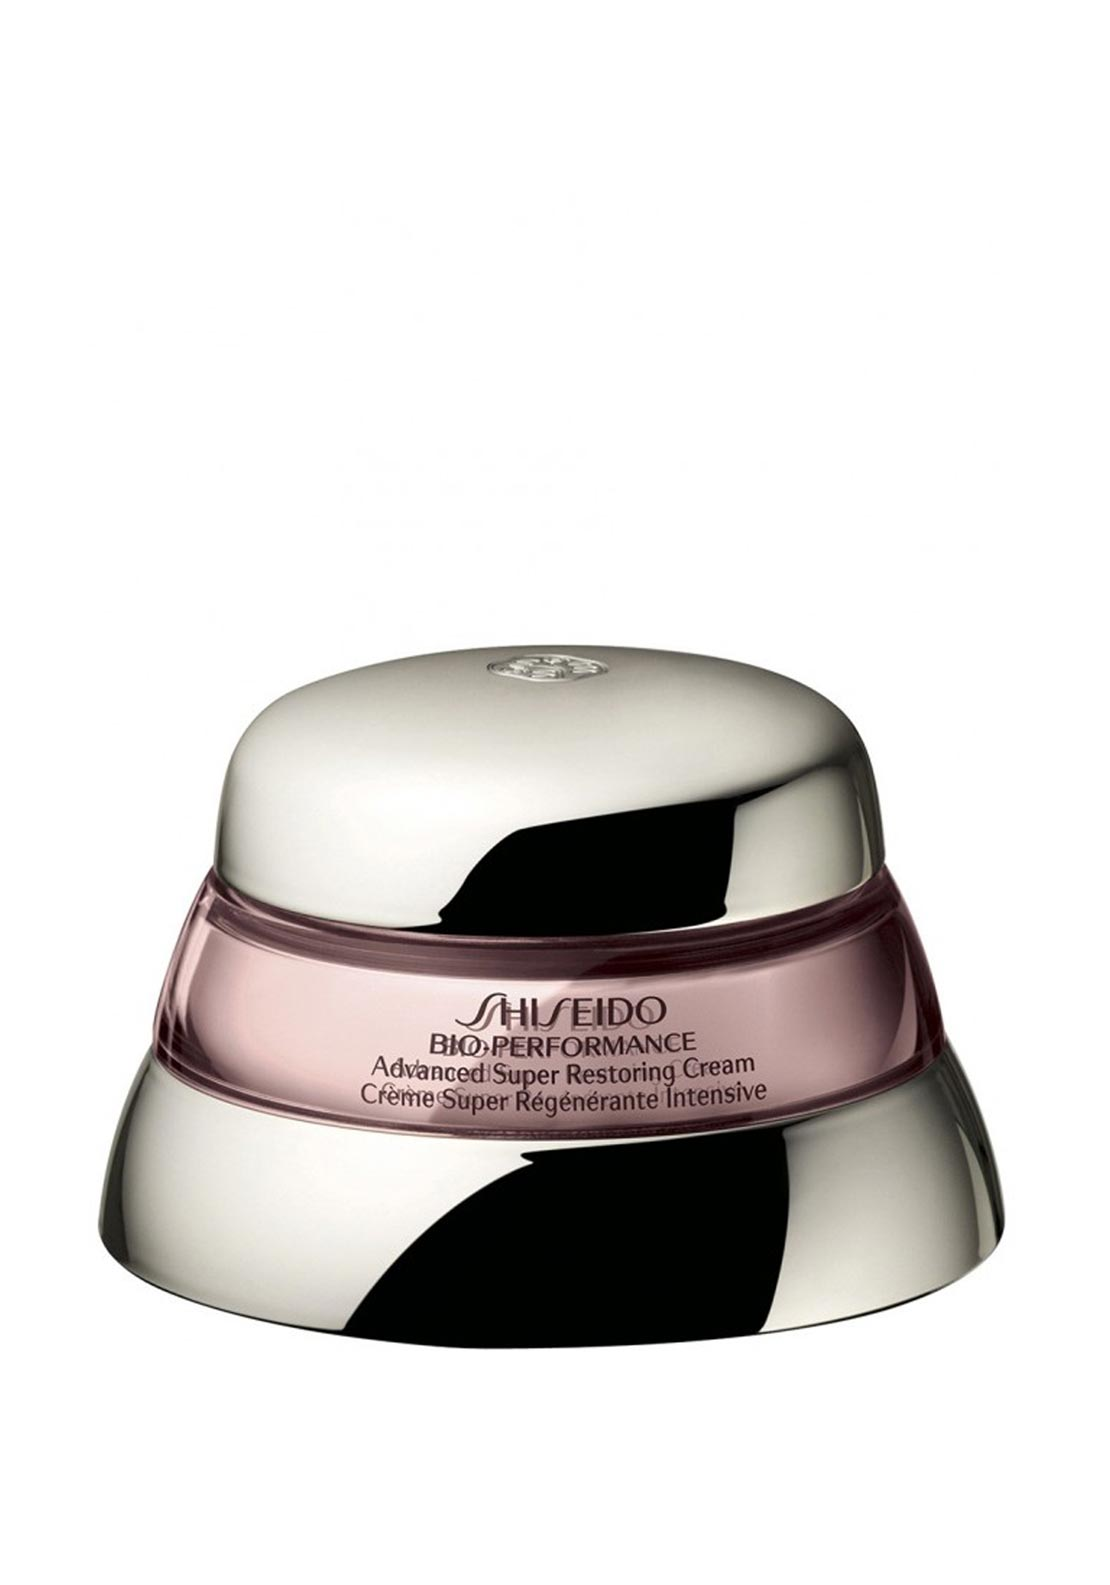 Shiseido Bio Performance Restoring Cream, 30ml